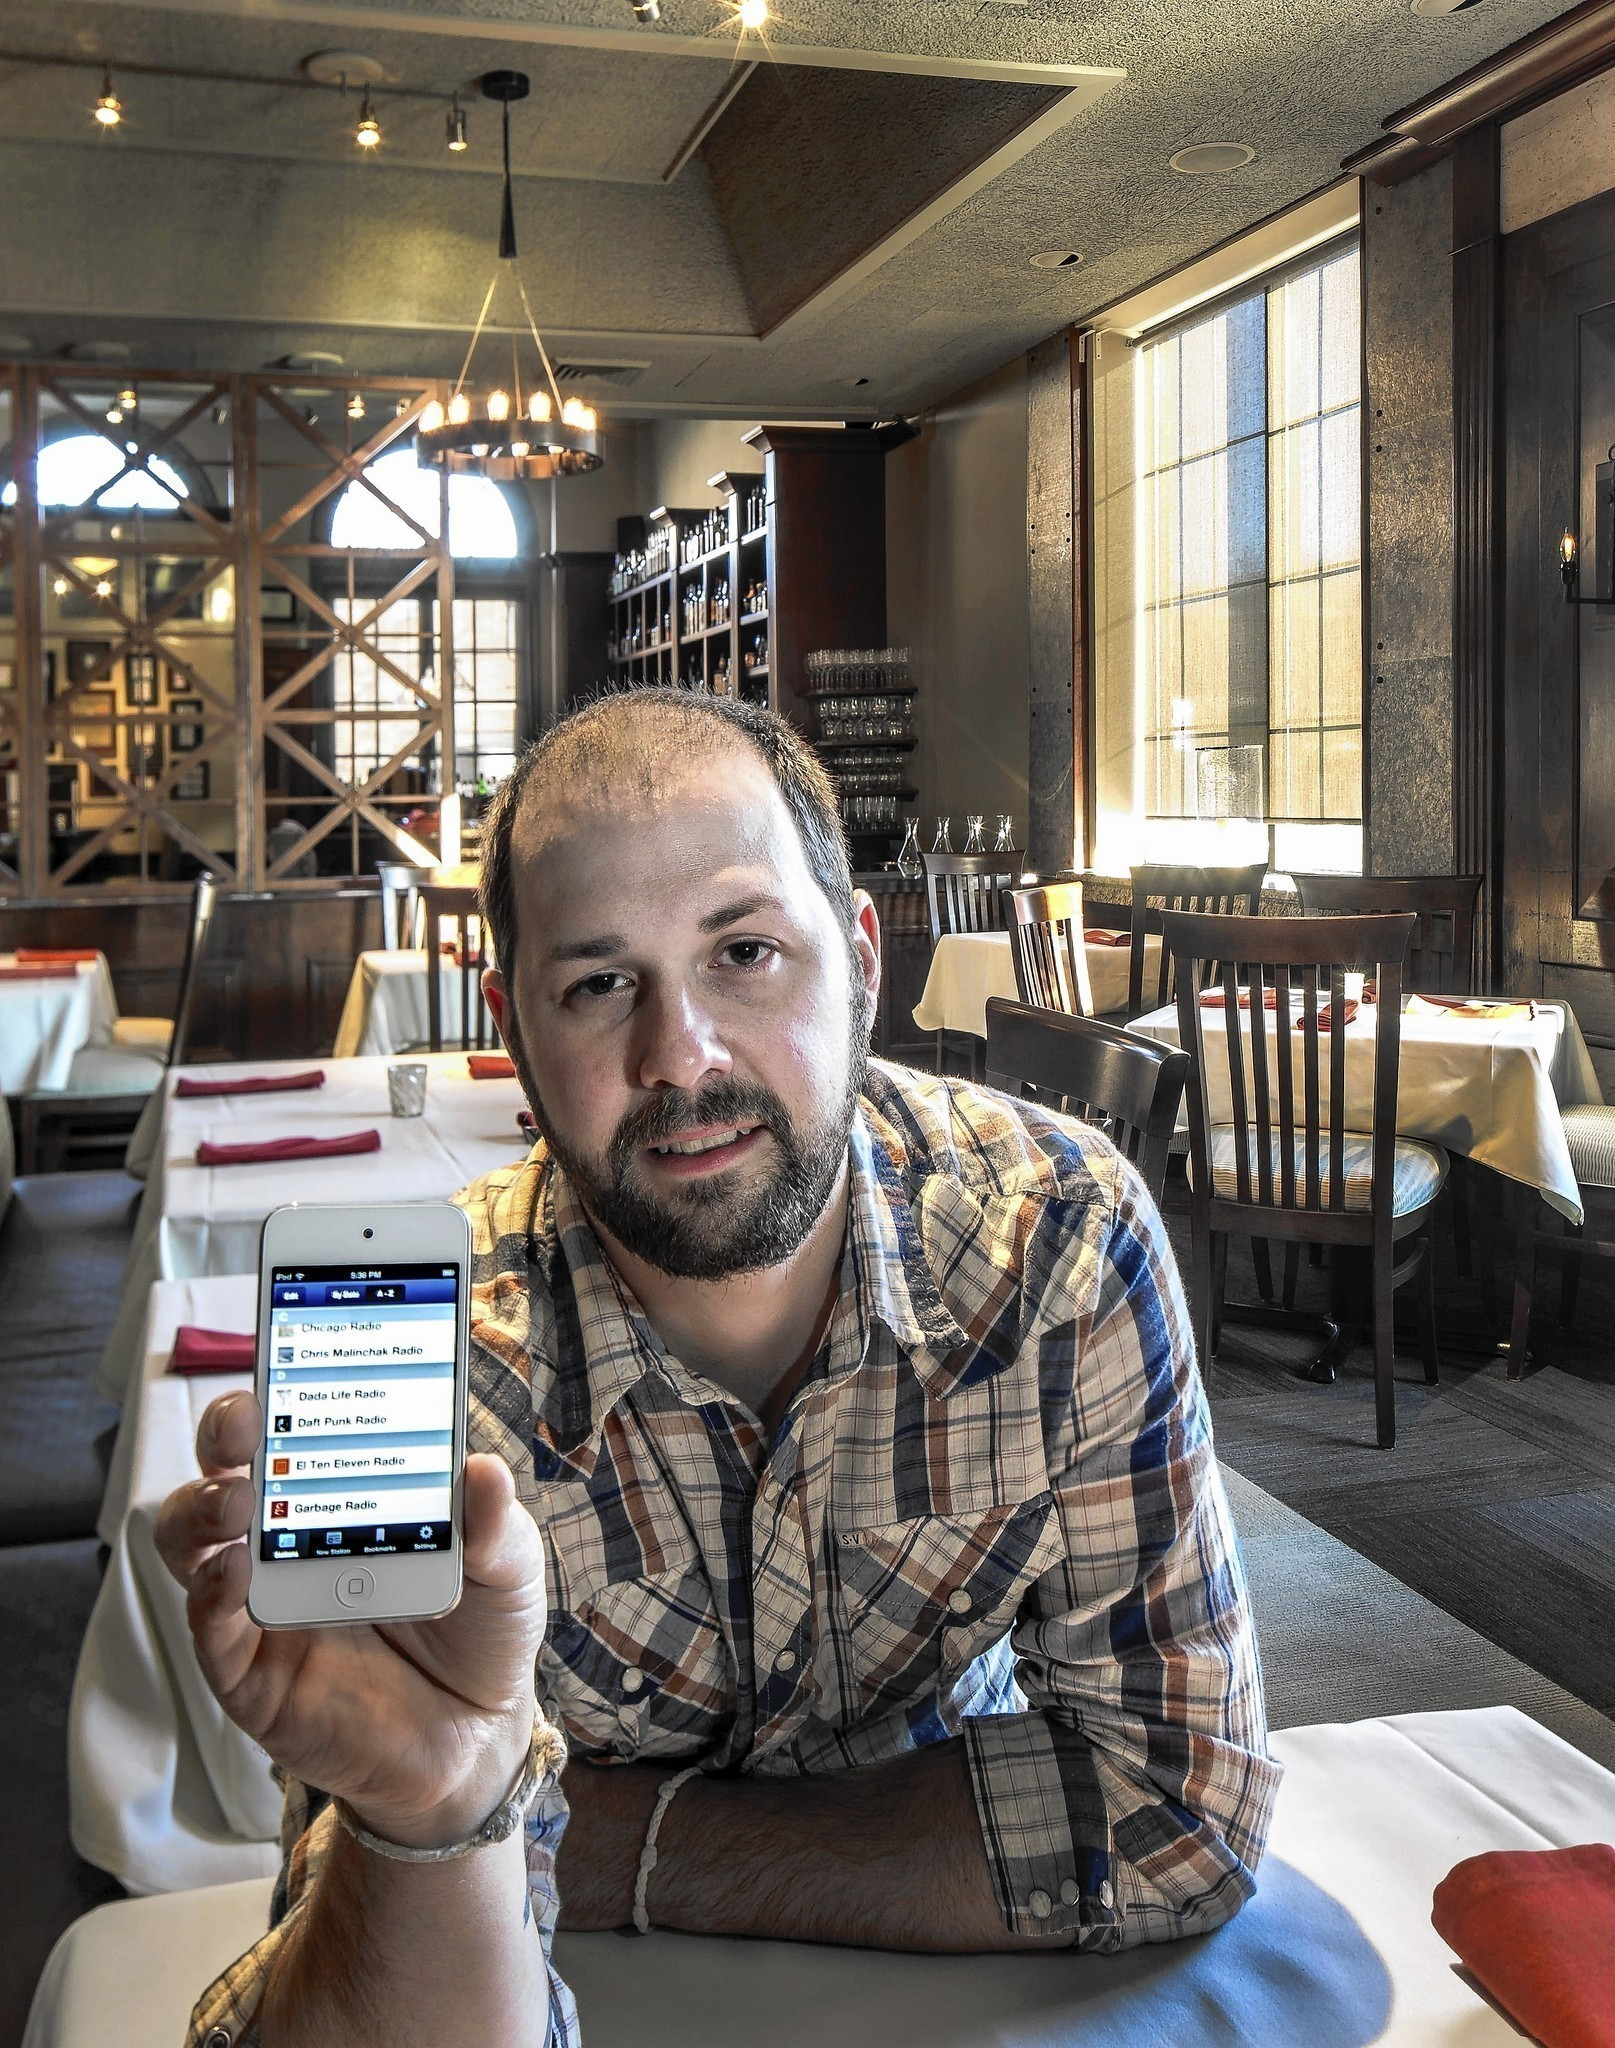 Vince Balistreri, general manager and sommelier of Niche restaurant in Geneva, IL, Balistreri is holding his iPhone featuring the playlist from Pandora that is used in the restaurant.